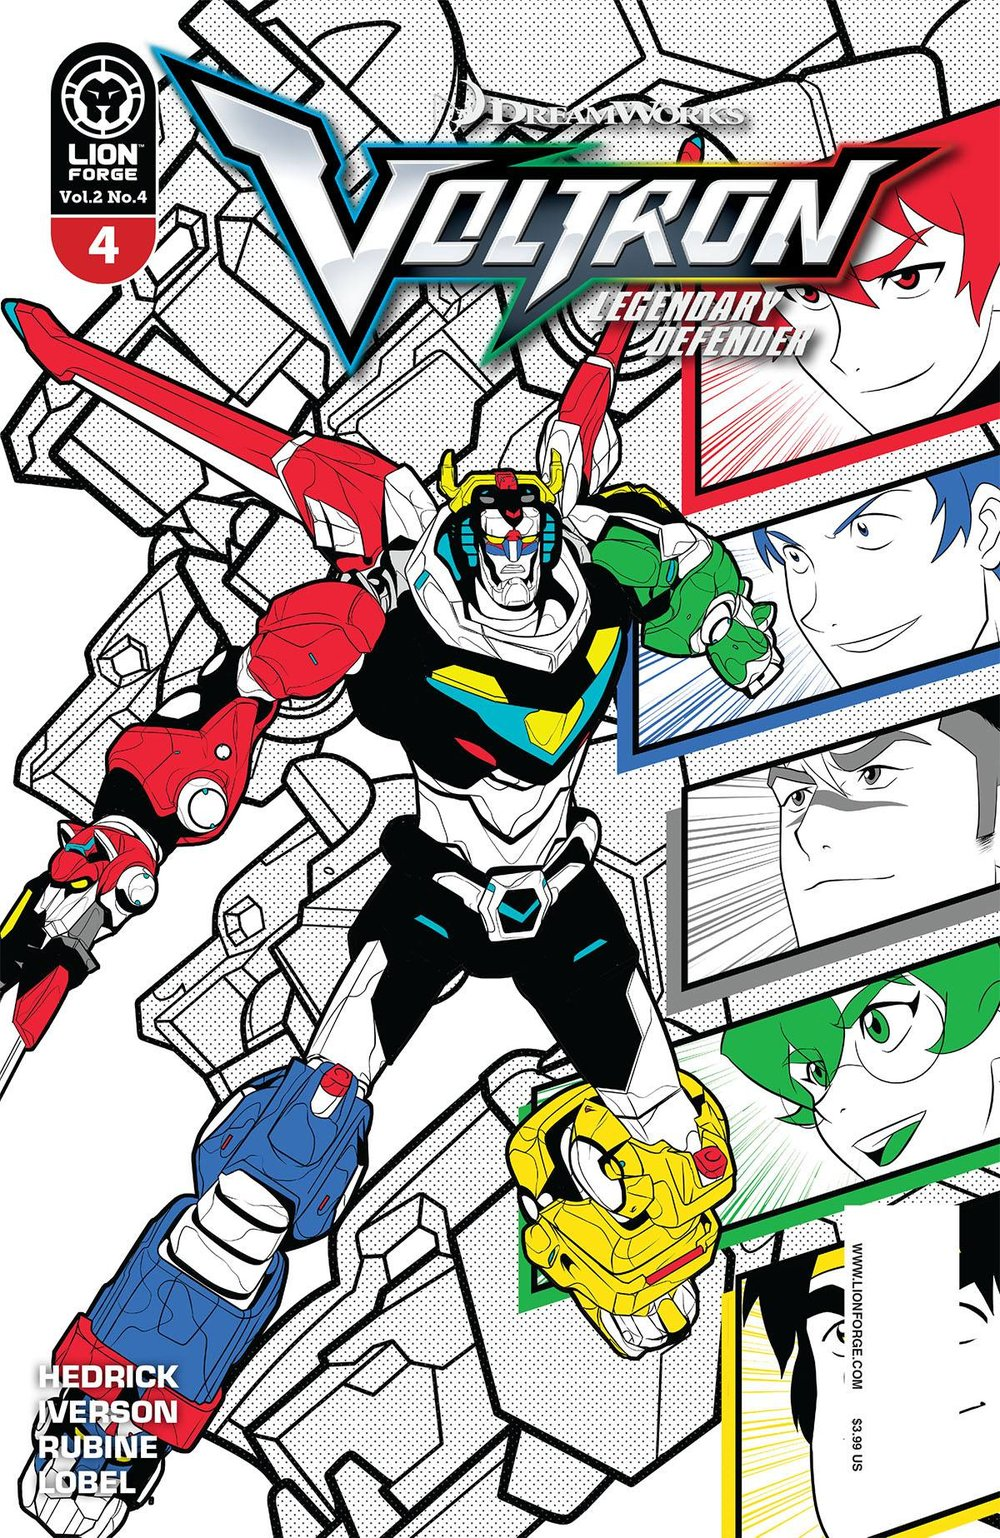 VOLTRON LEGENDARY DEFENDER VOL 2 4.jpg